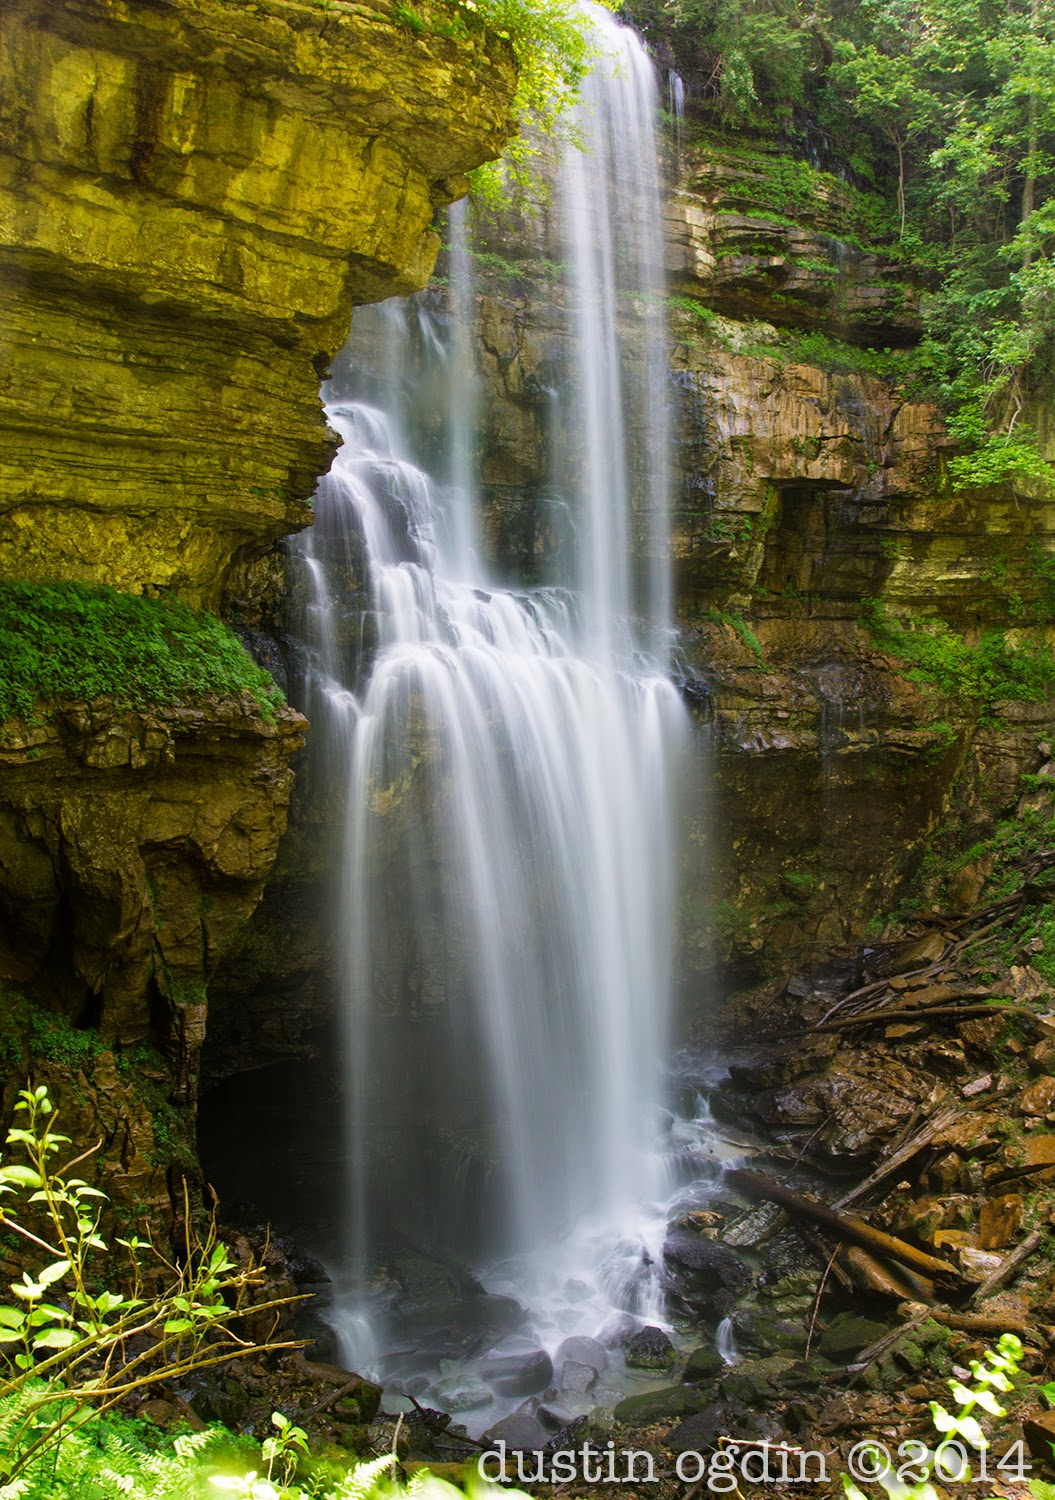 Virgin Falls in Tennesee's Cumberland Plateau region